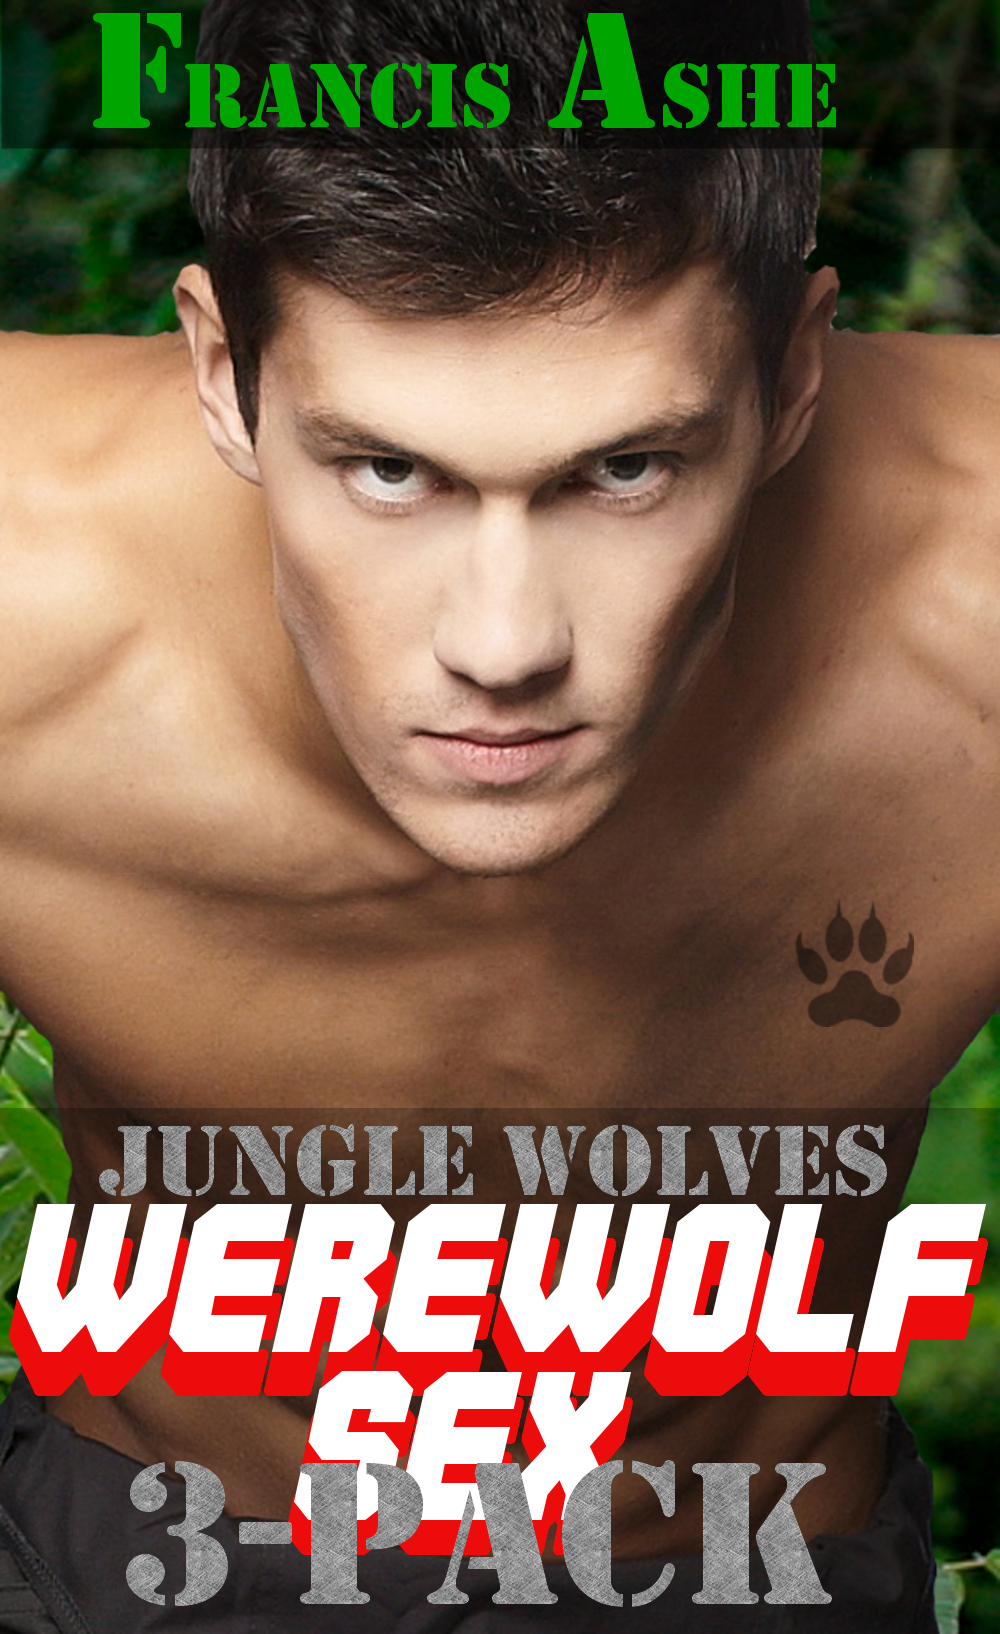 Francis Ashe - Jungle Wolves Collection